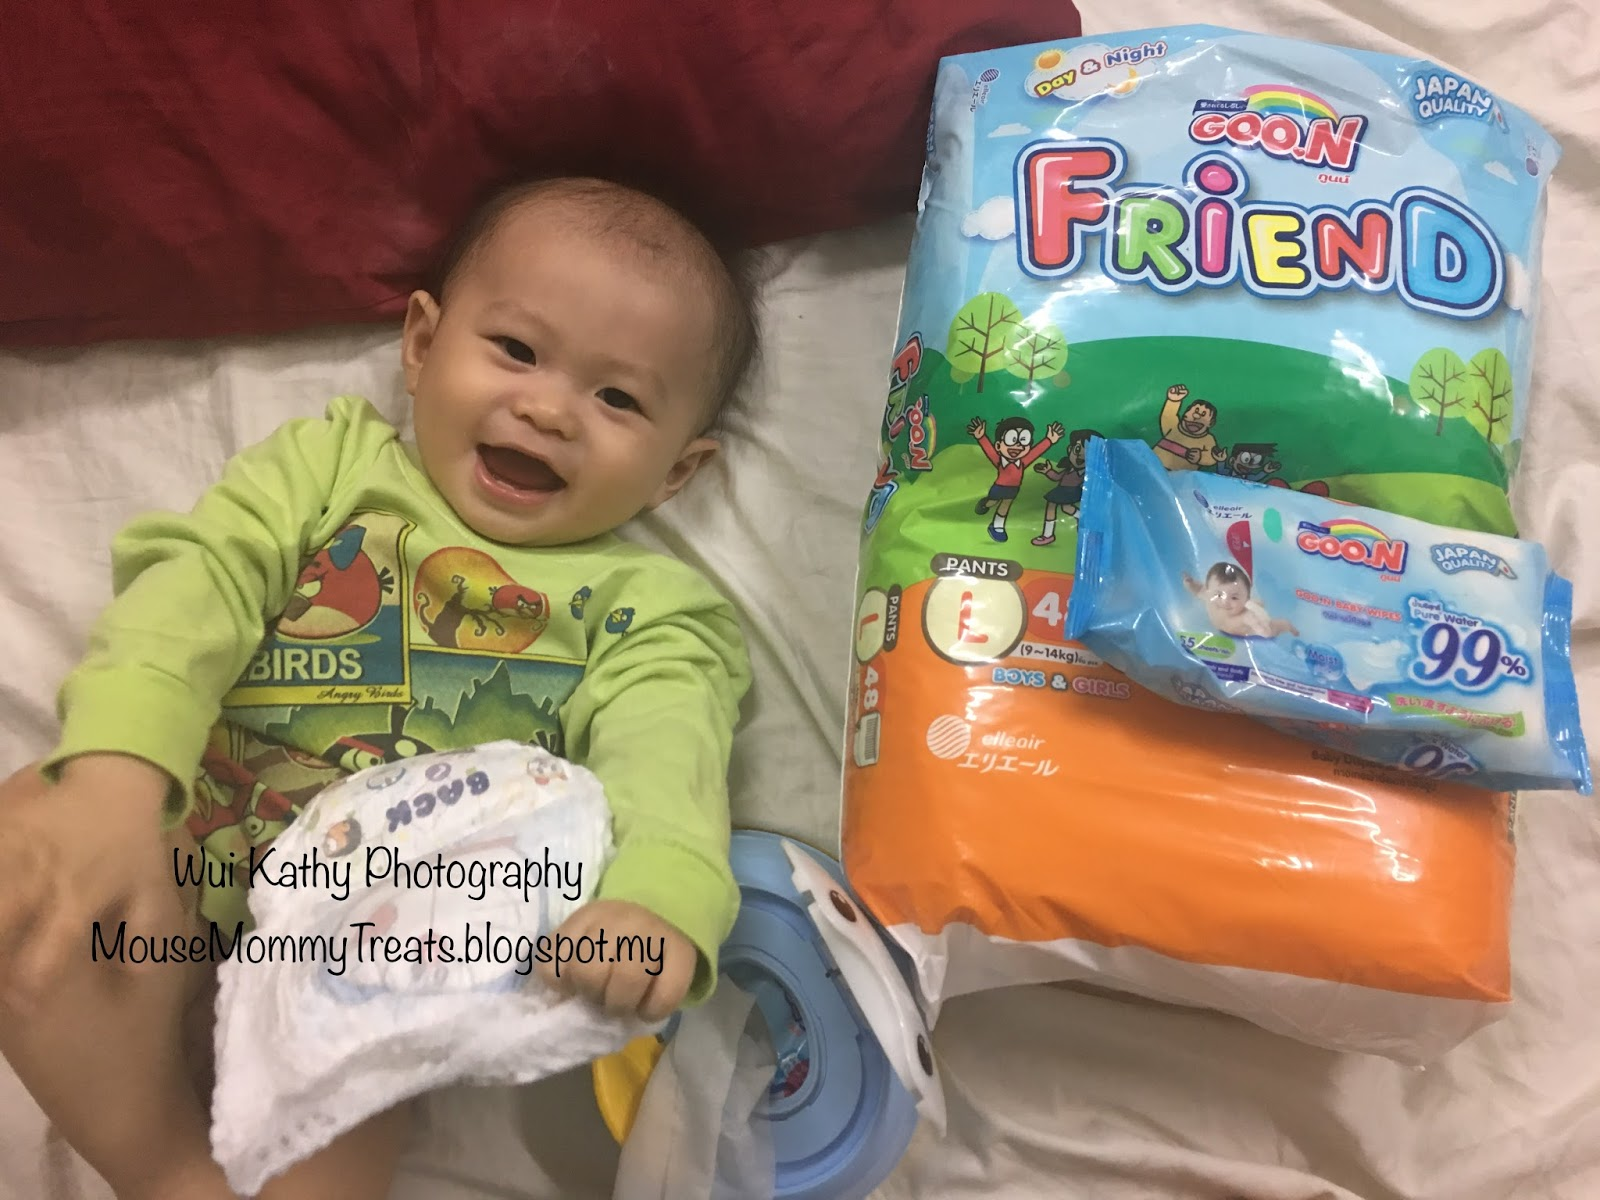 Goon Friend I Babys Bum Buddy Mouse Mommy Treats Smile Baby Pants L30 Healthy Skin Happy